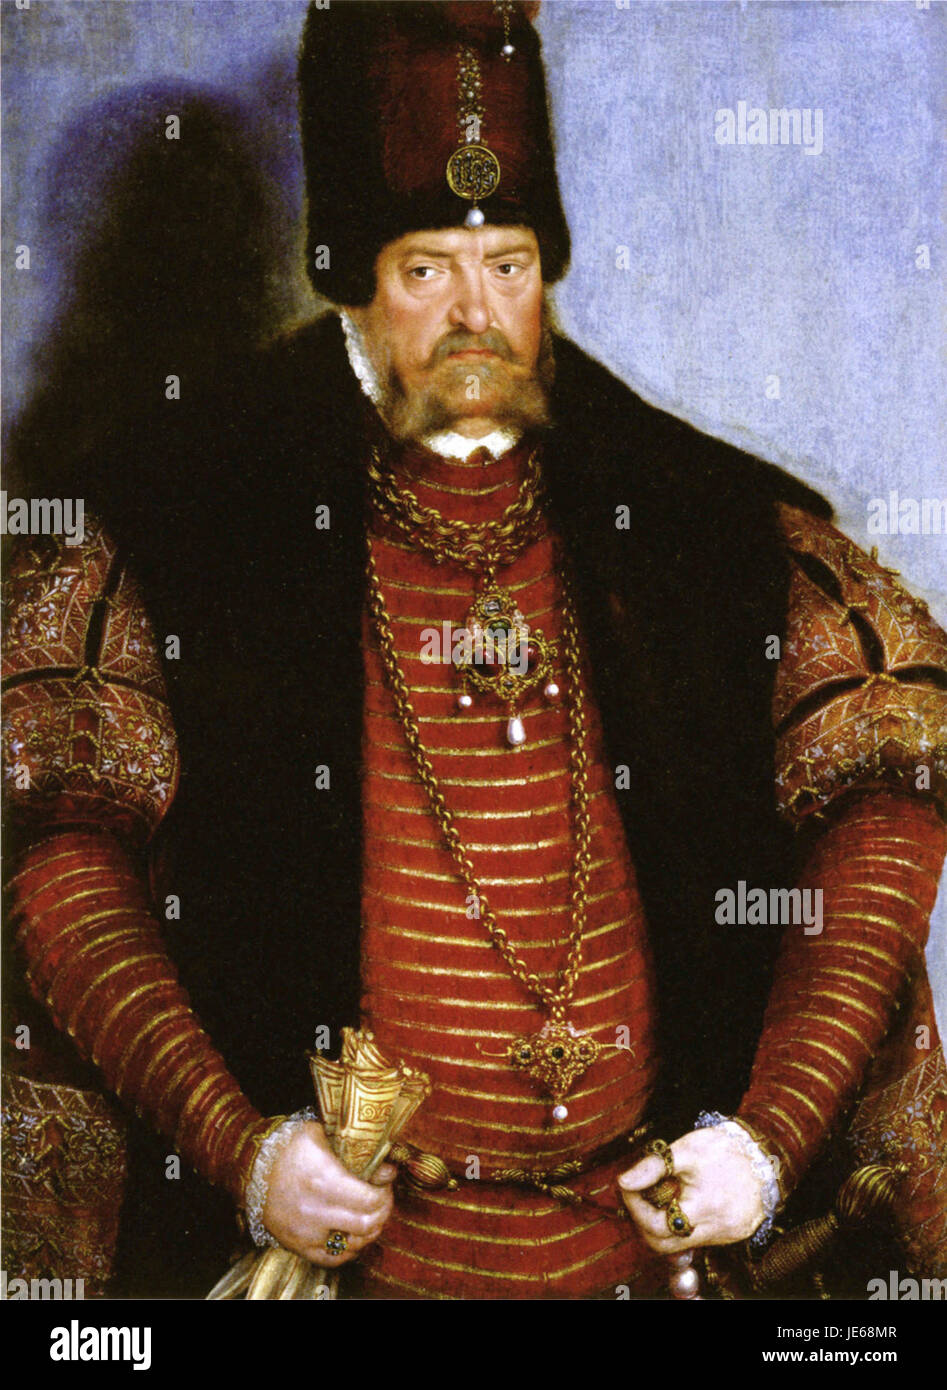 Joachim II of Brandenburg by Lucas Cranach the Younger - Stock Image